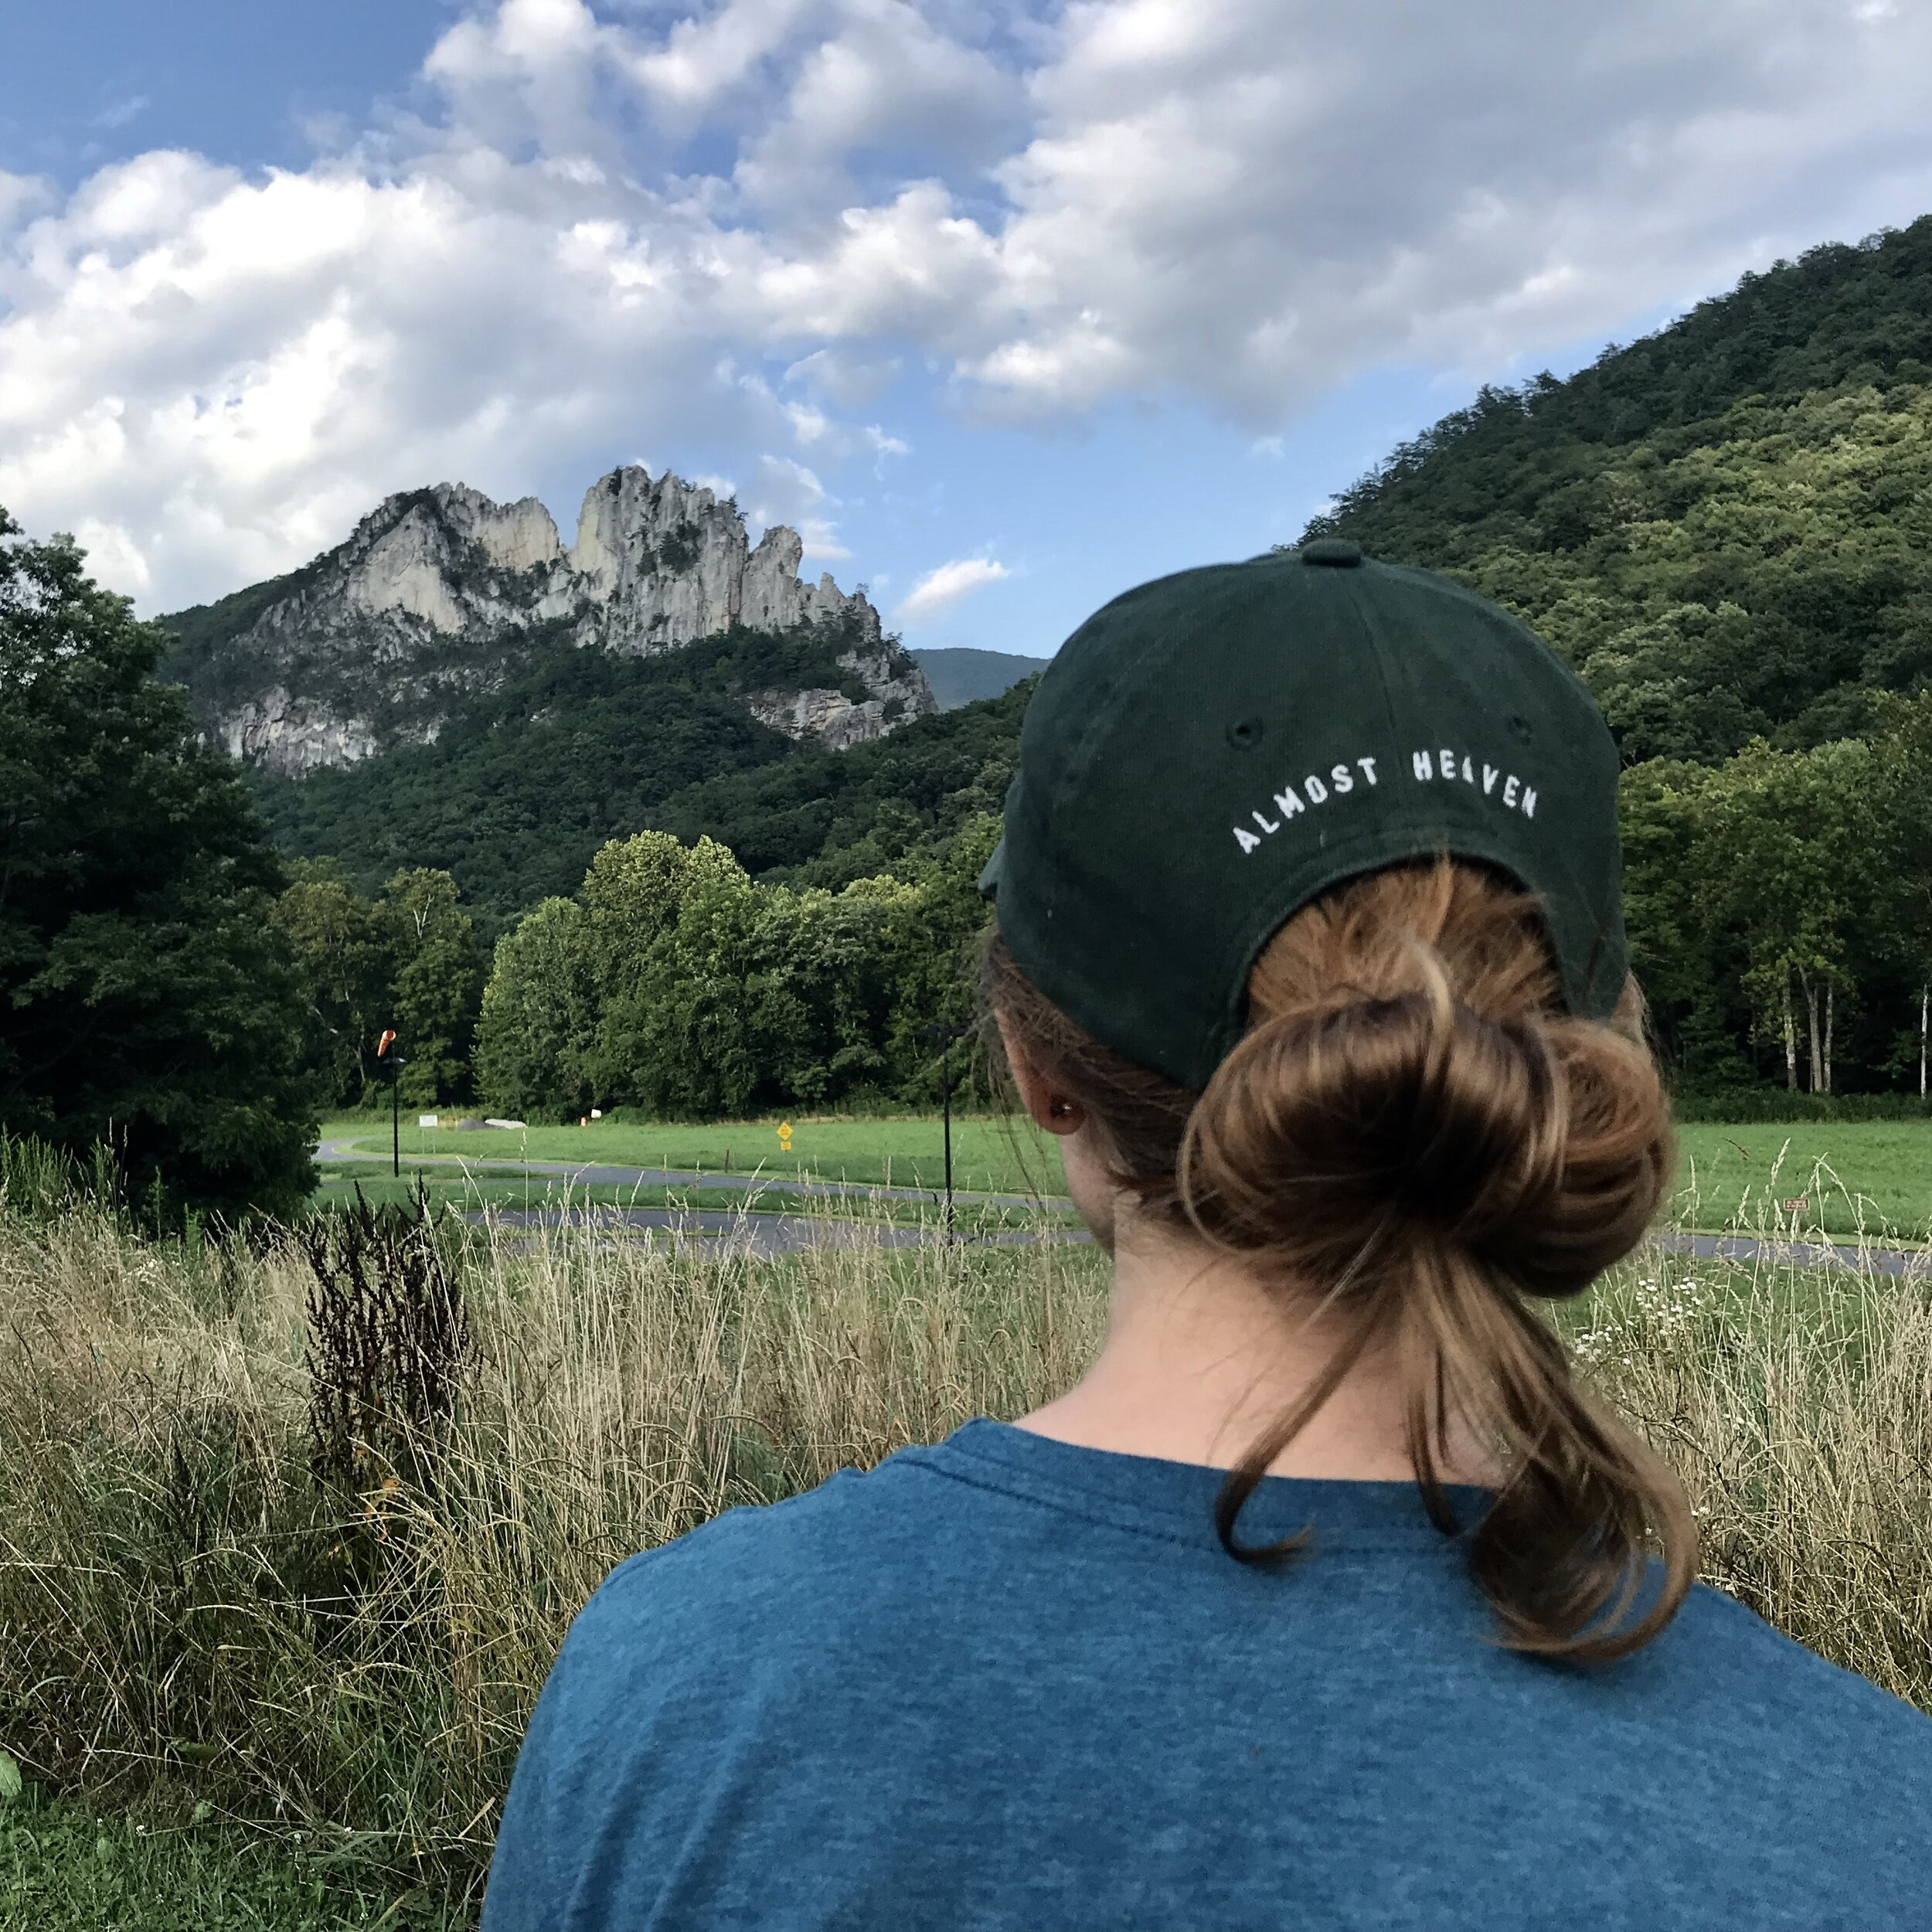 Taking in the grandeur of Seneca Rocks from the parking lot after our hike